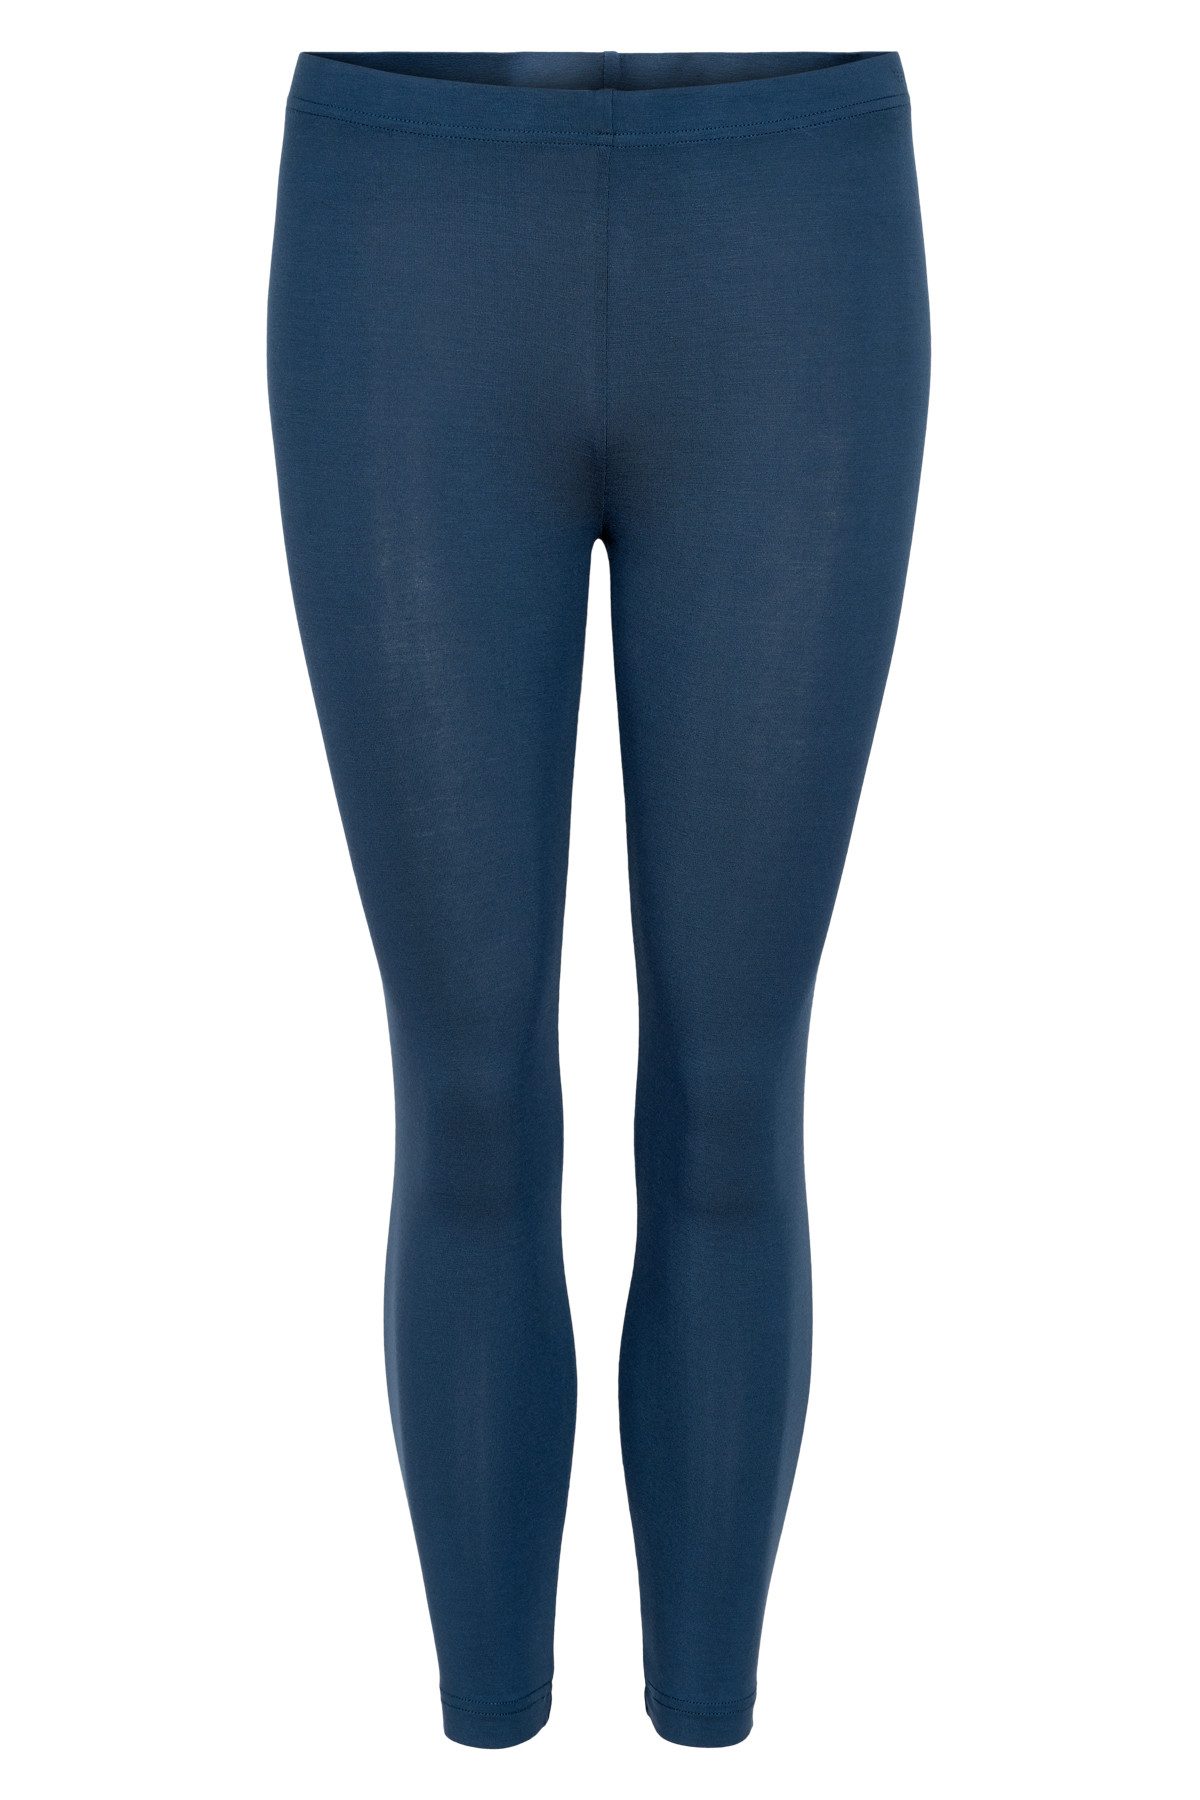 NOA NOA LEGGINGS 1-9383-1 00690 (Blue, XS)